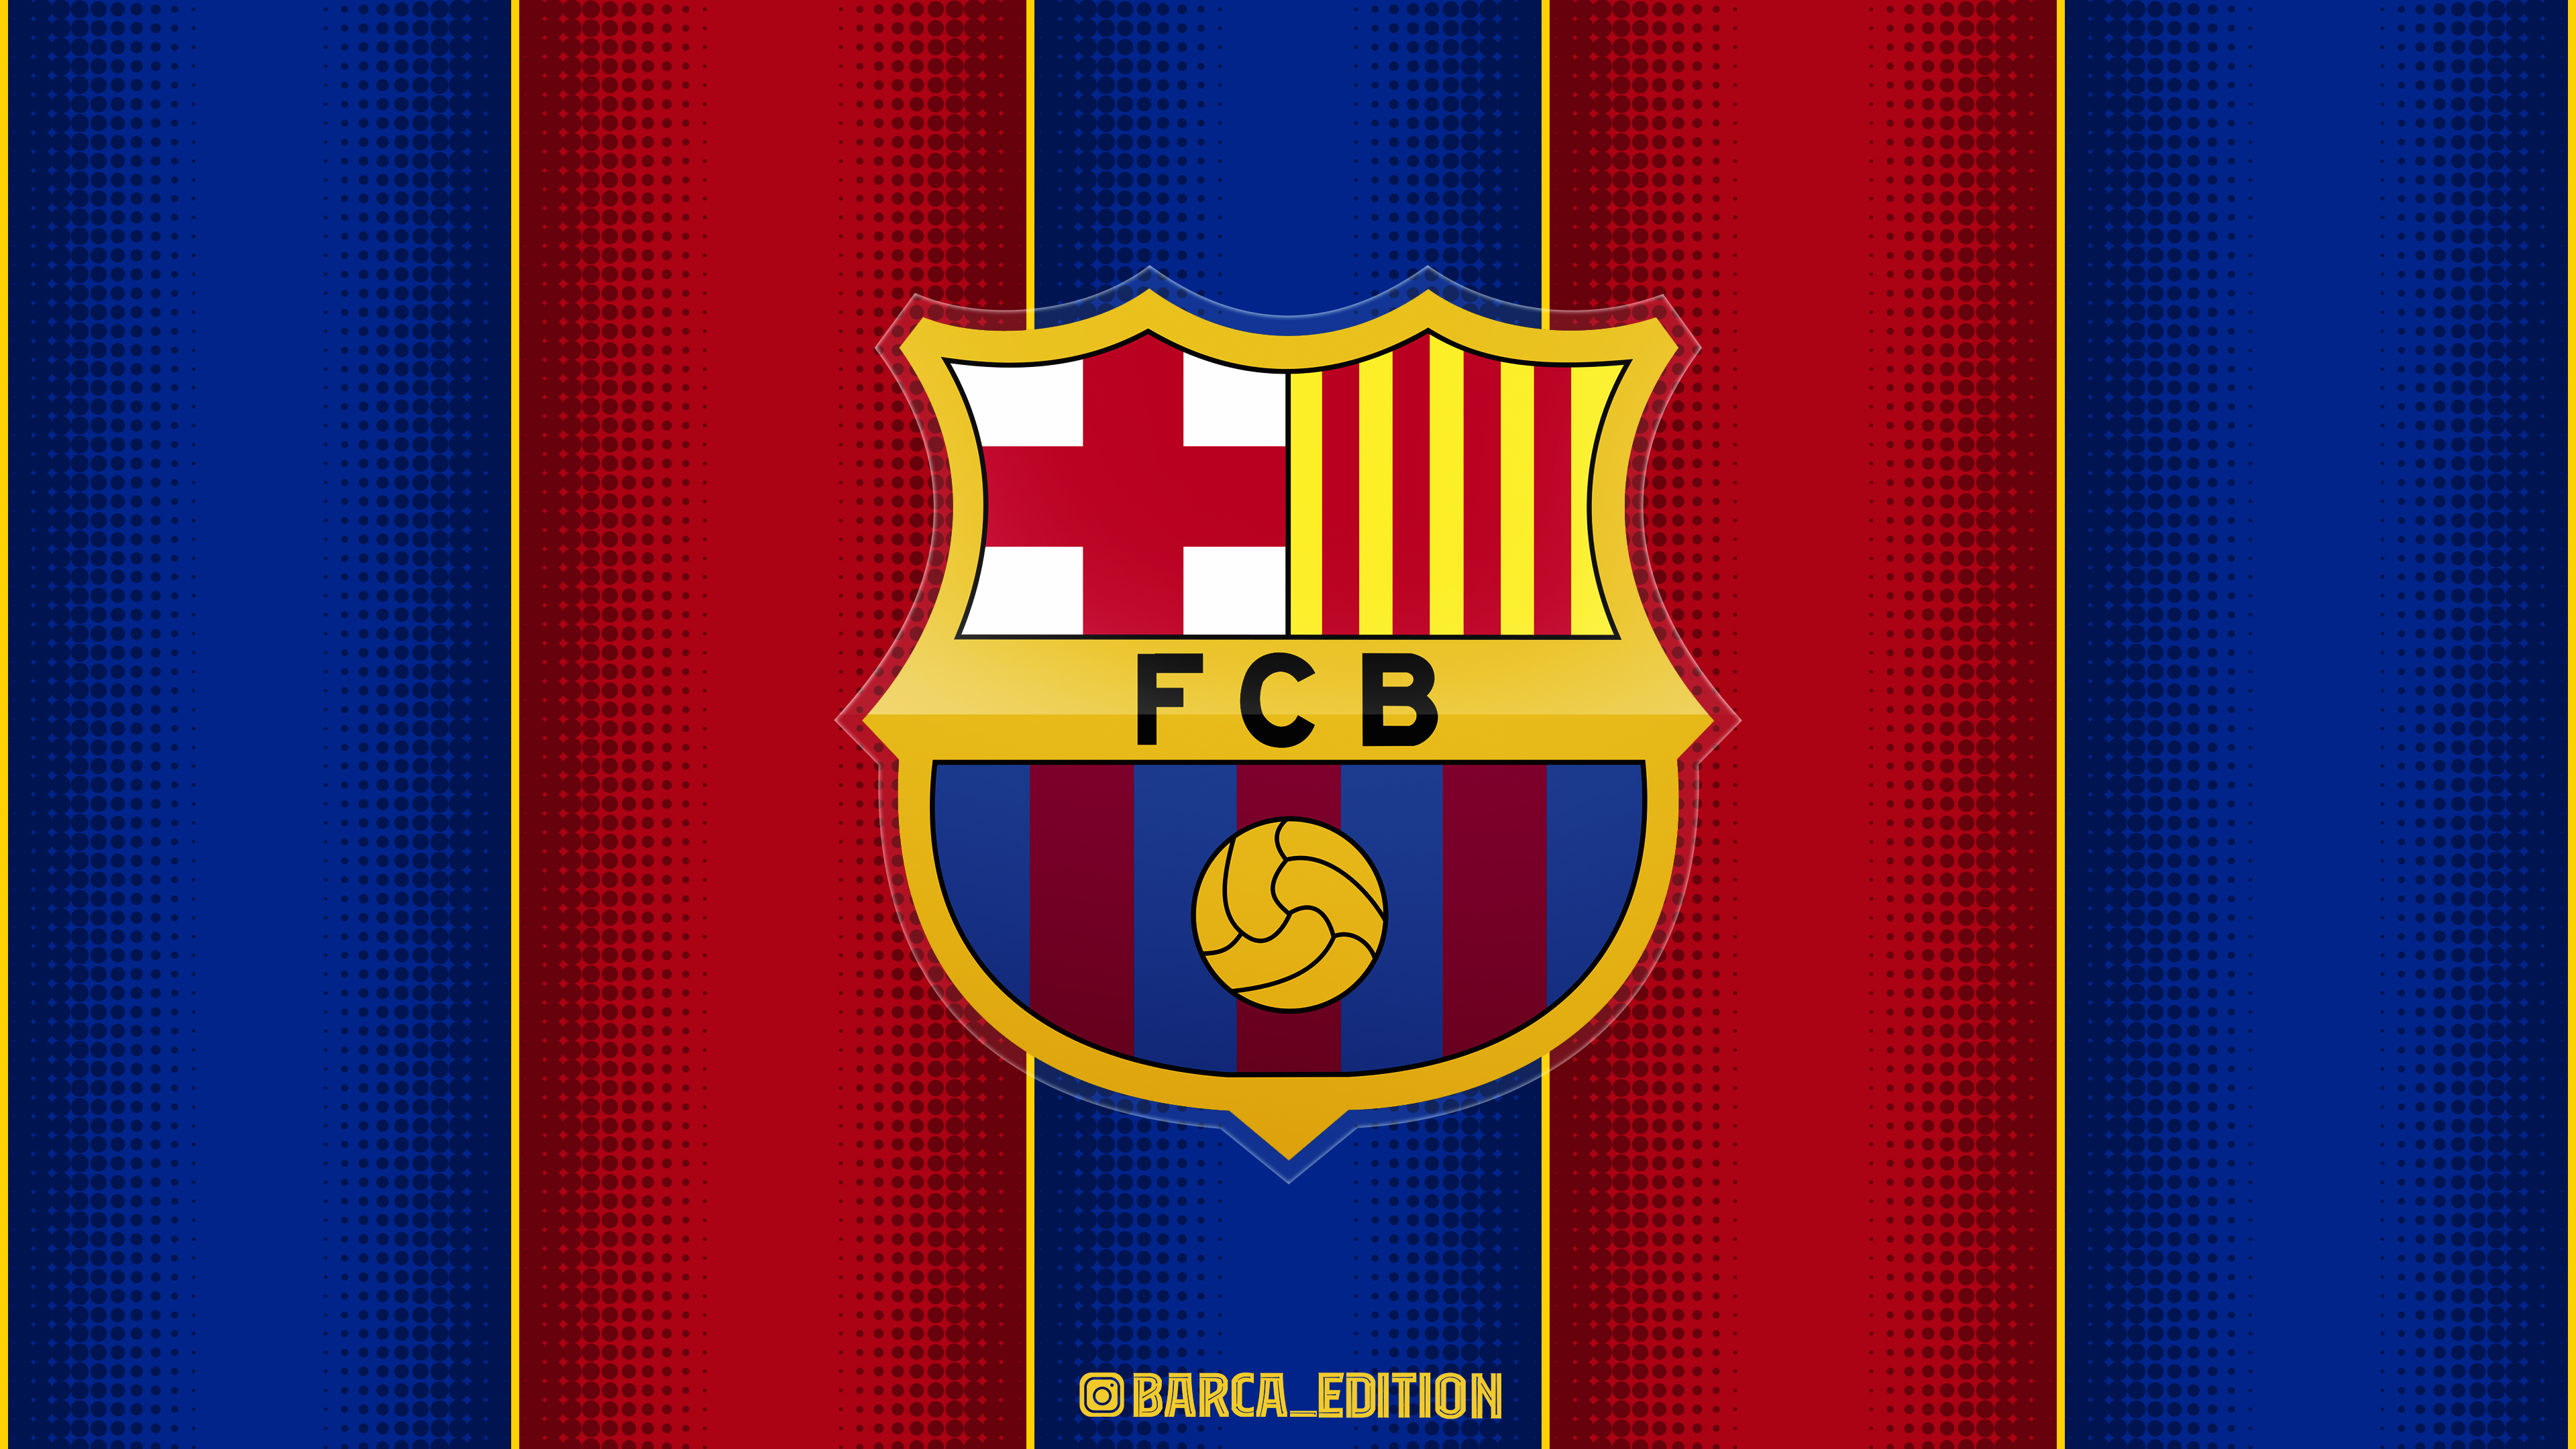 Fc Barcelona 2021 Wallpaper 4k By Selvedinfcb On Deviantart